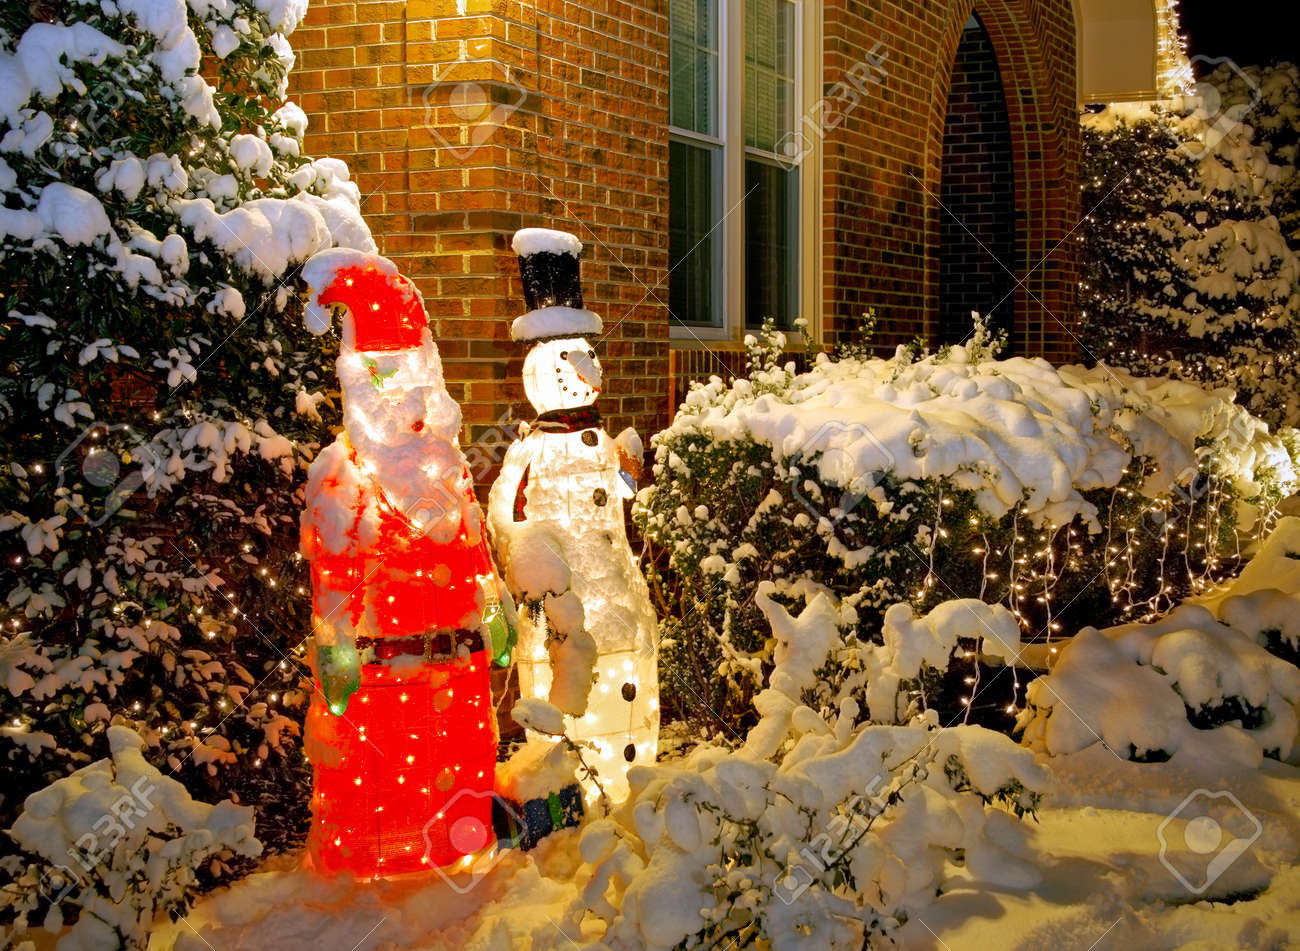 Outdoor Santa And Snowman Decorations Covered In Snow Stock Photo   11455212